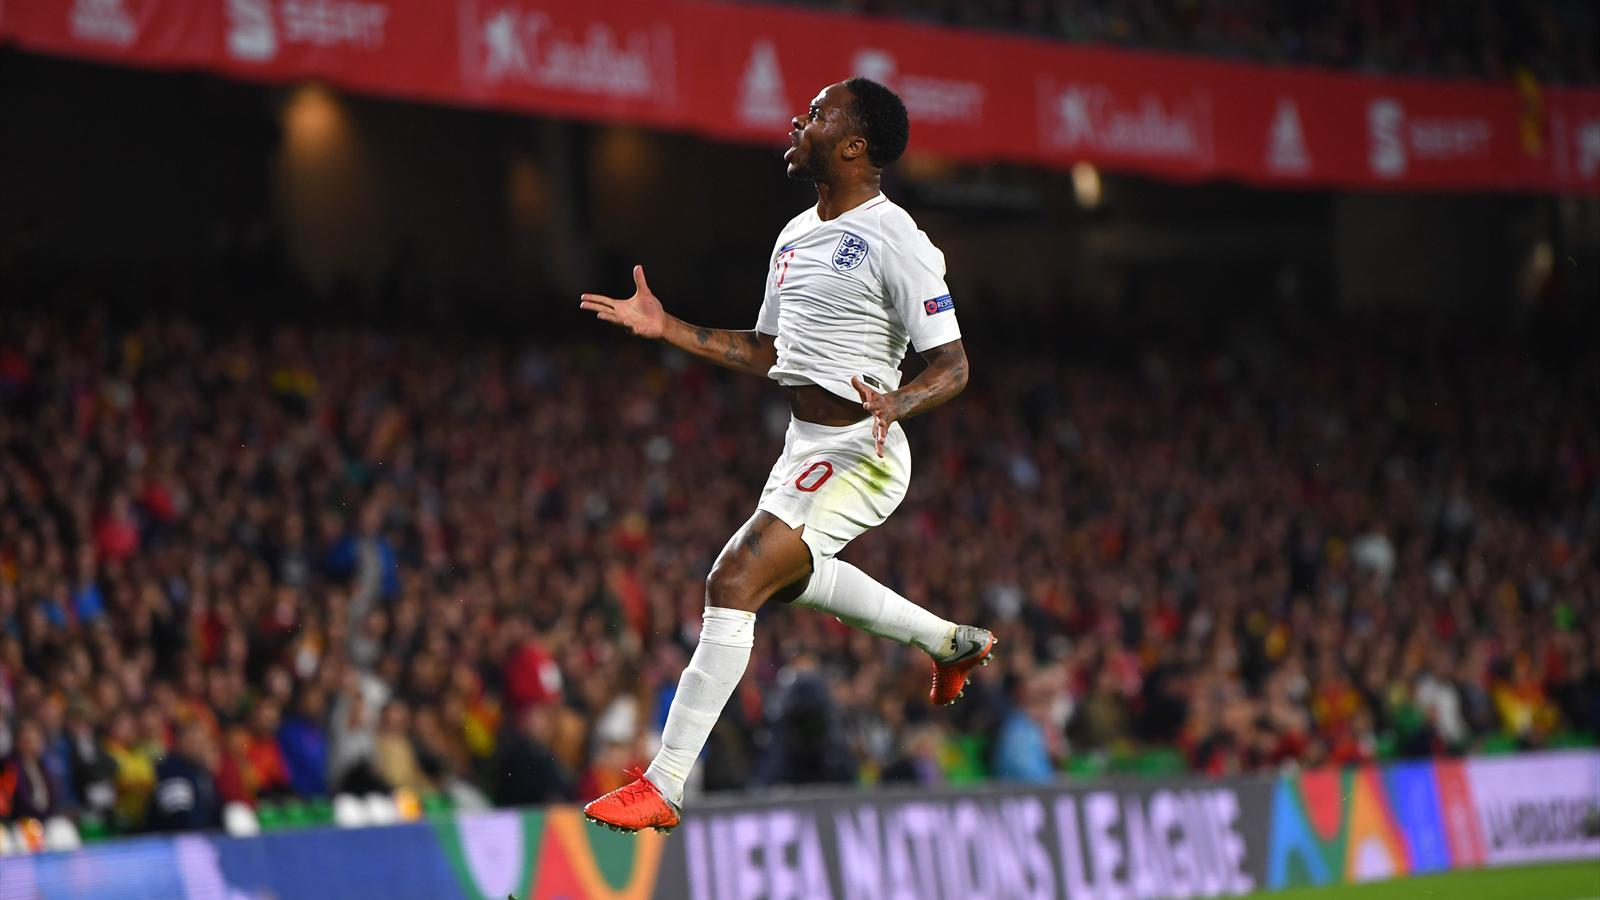 raheem sterling ends goal drought as england stun spain